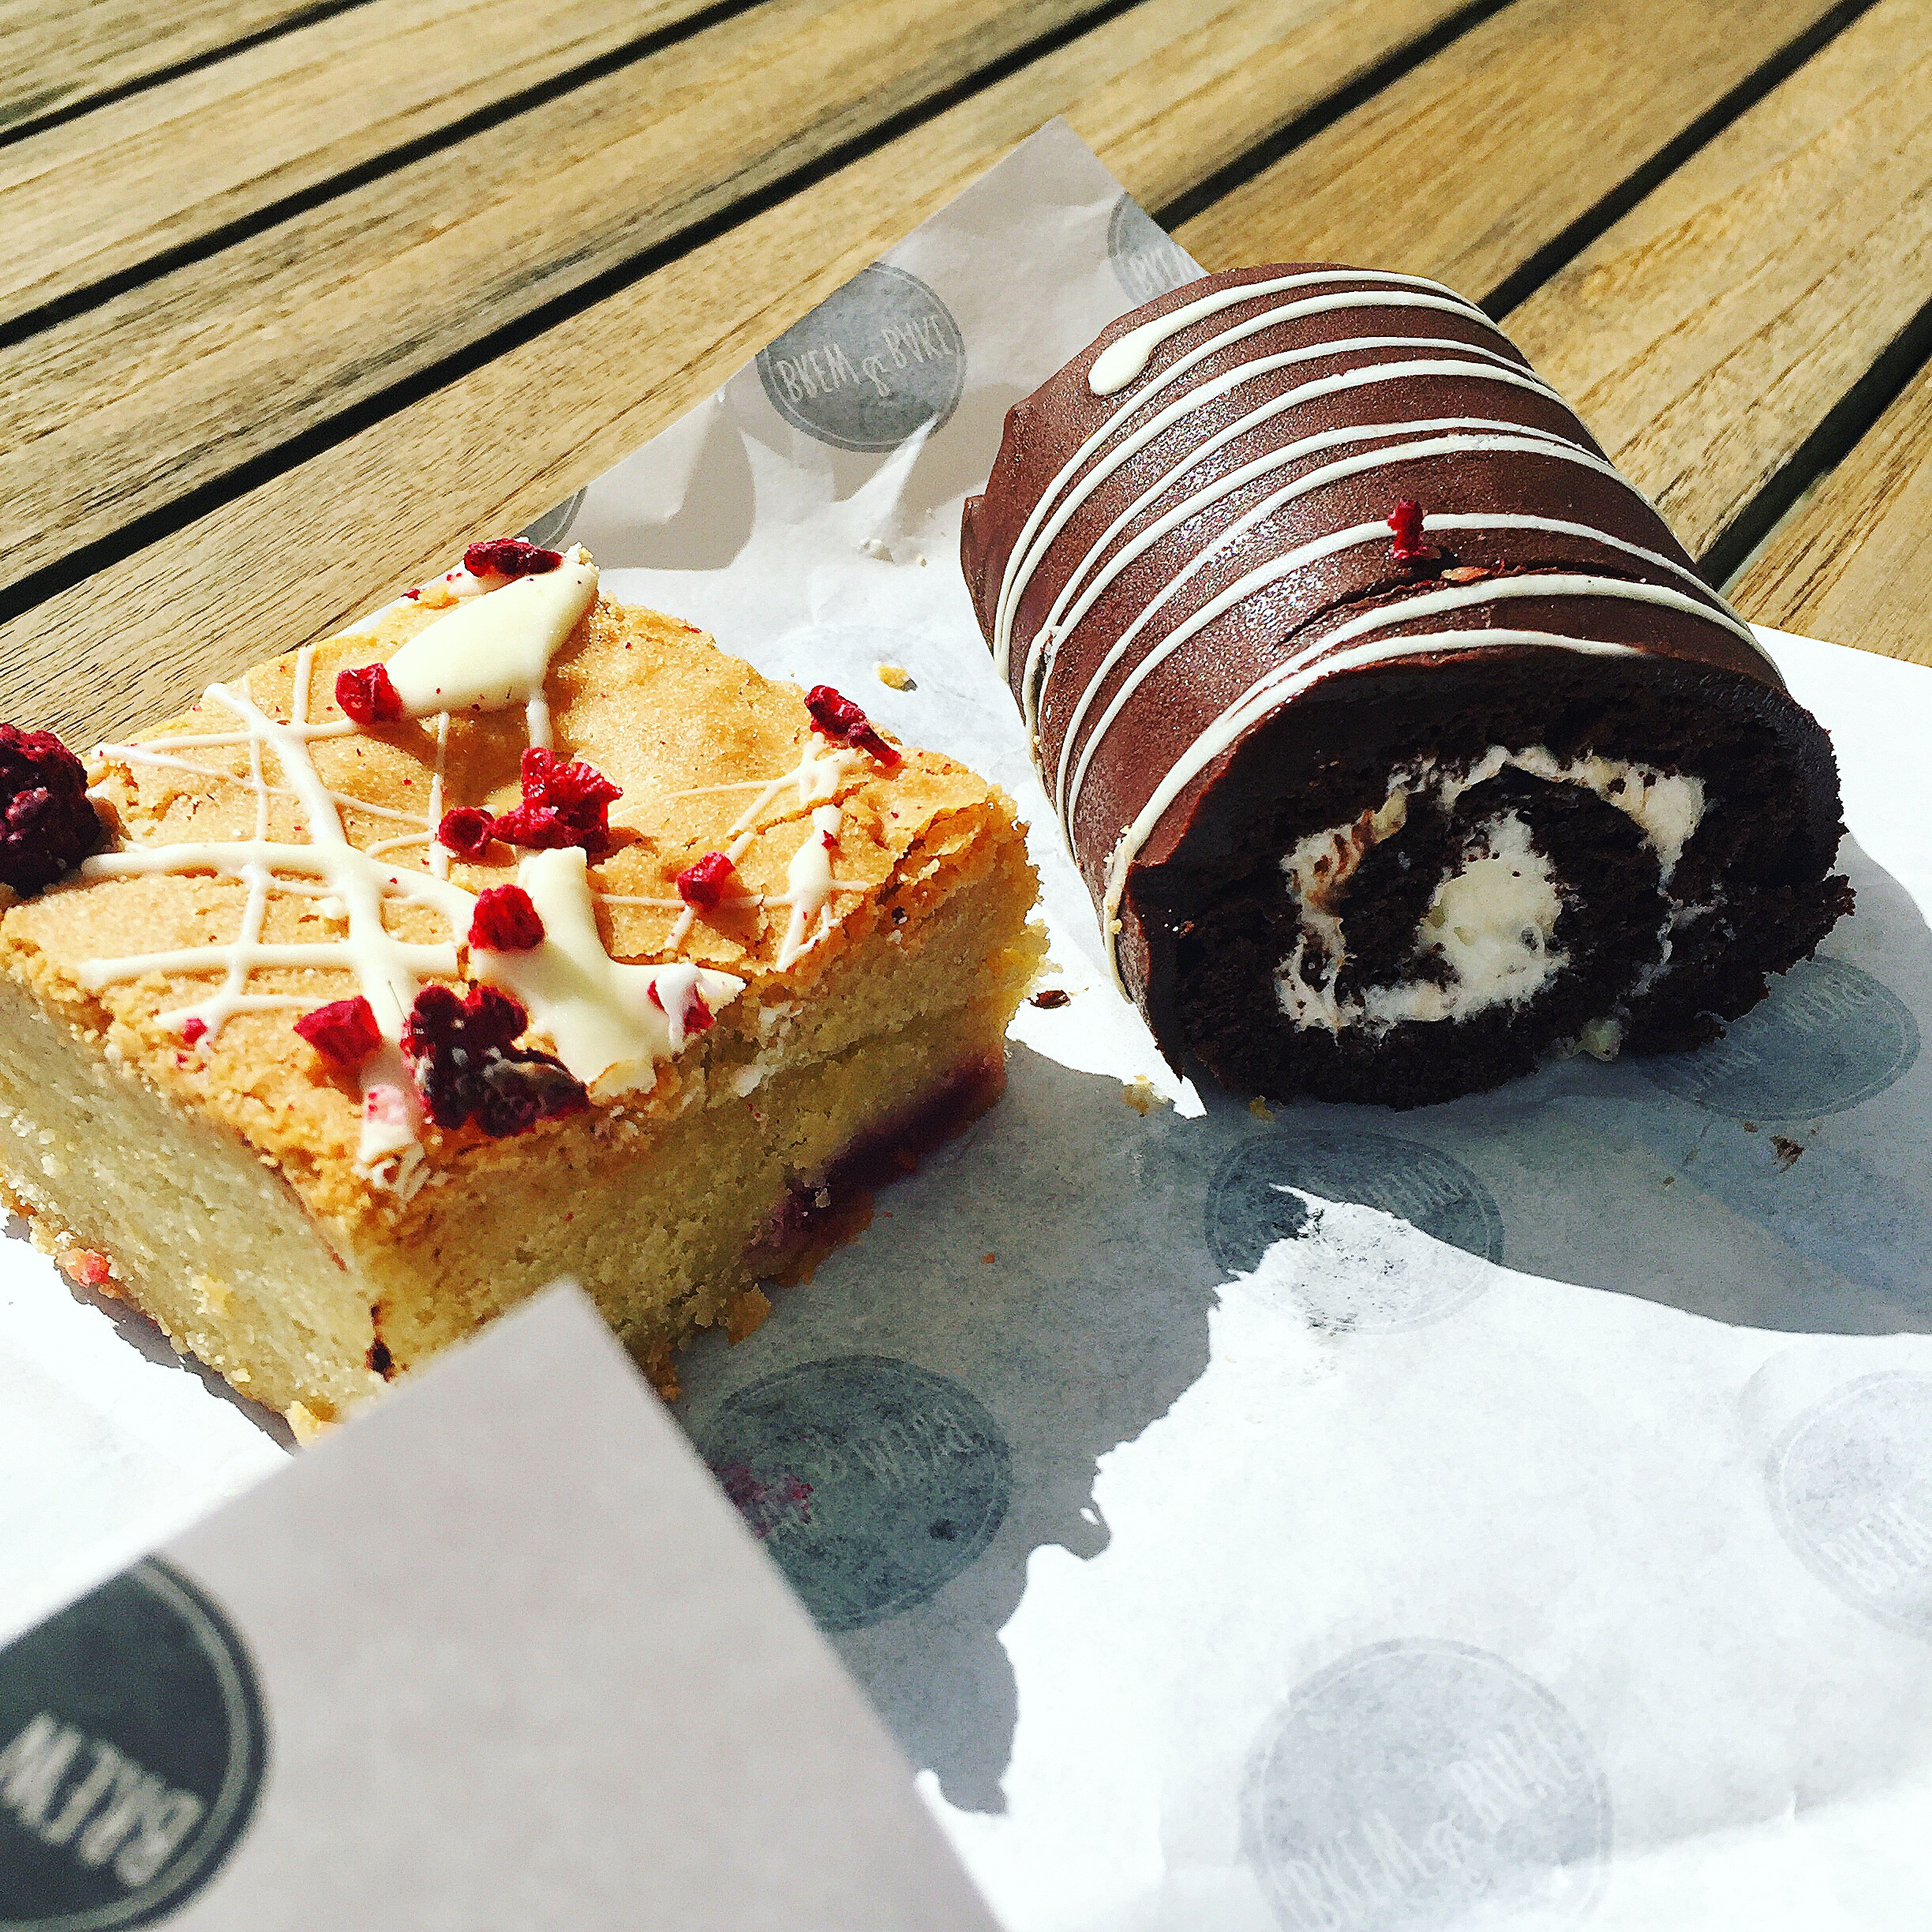 Brew-and-bake-cake-bakeoff-cheltenham-blog-eats-review-swissroll.JPG